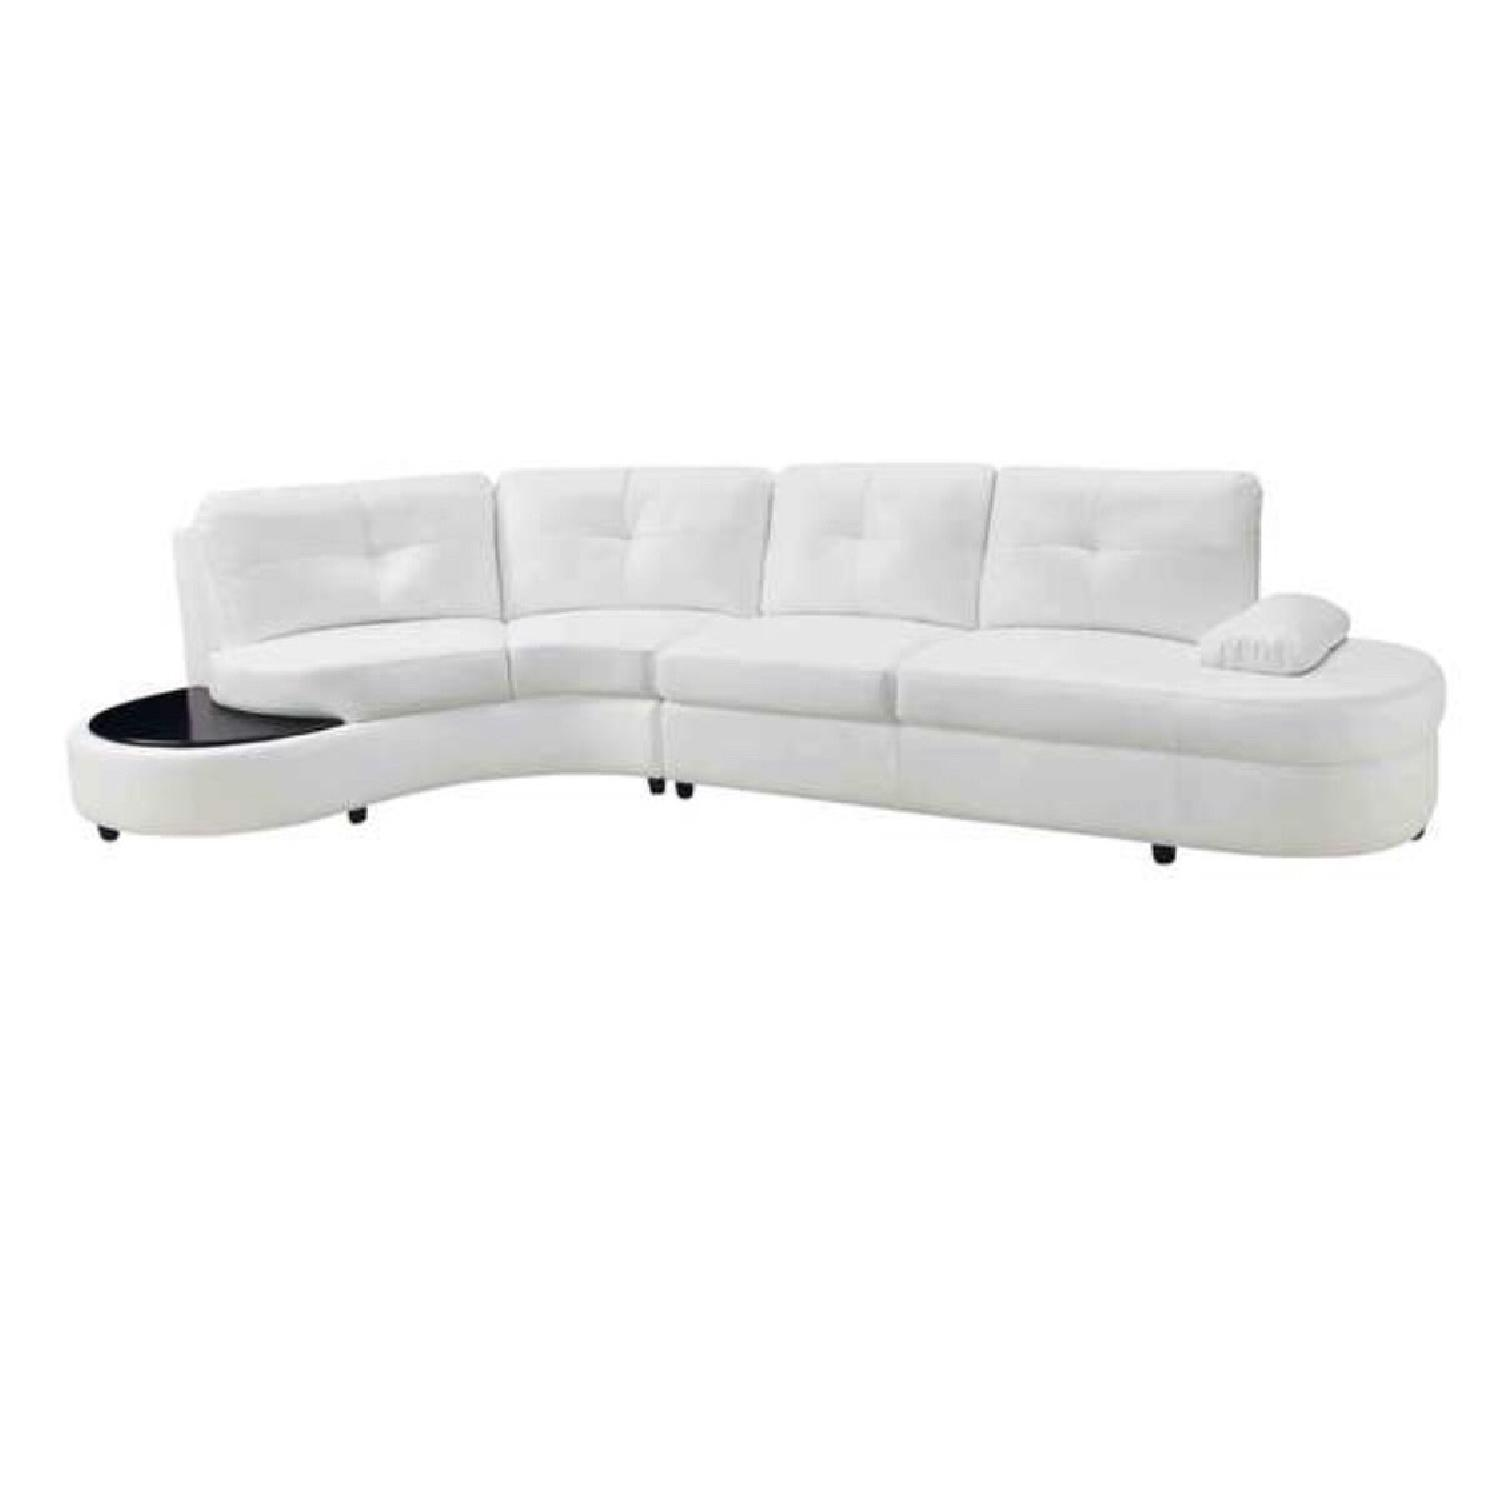 Coaster Talia White Sectional Sofa w/ Built in Table